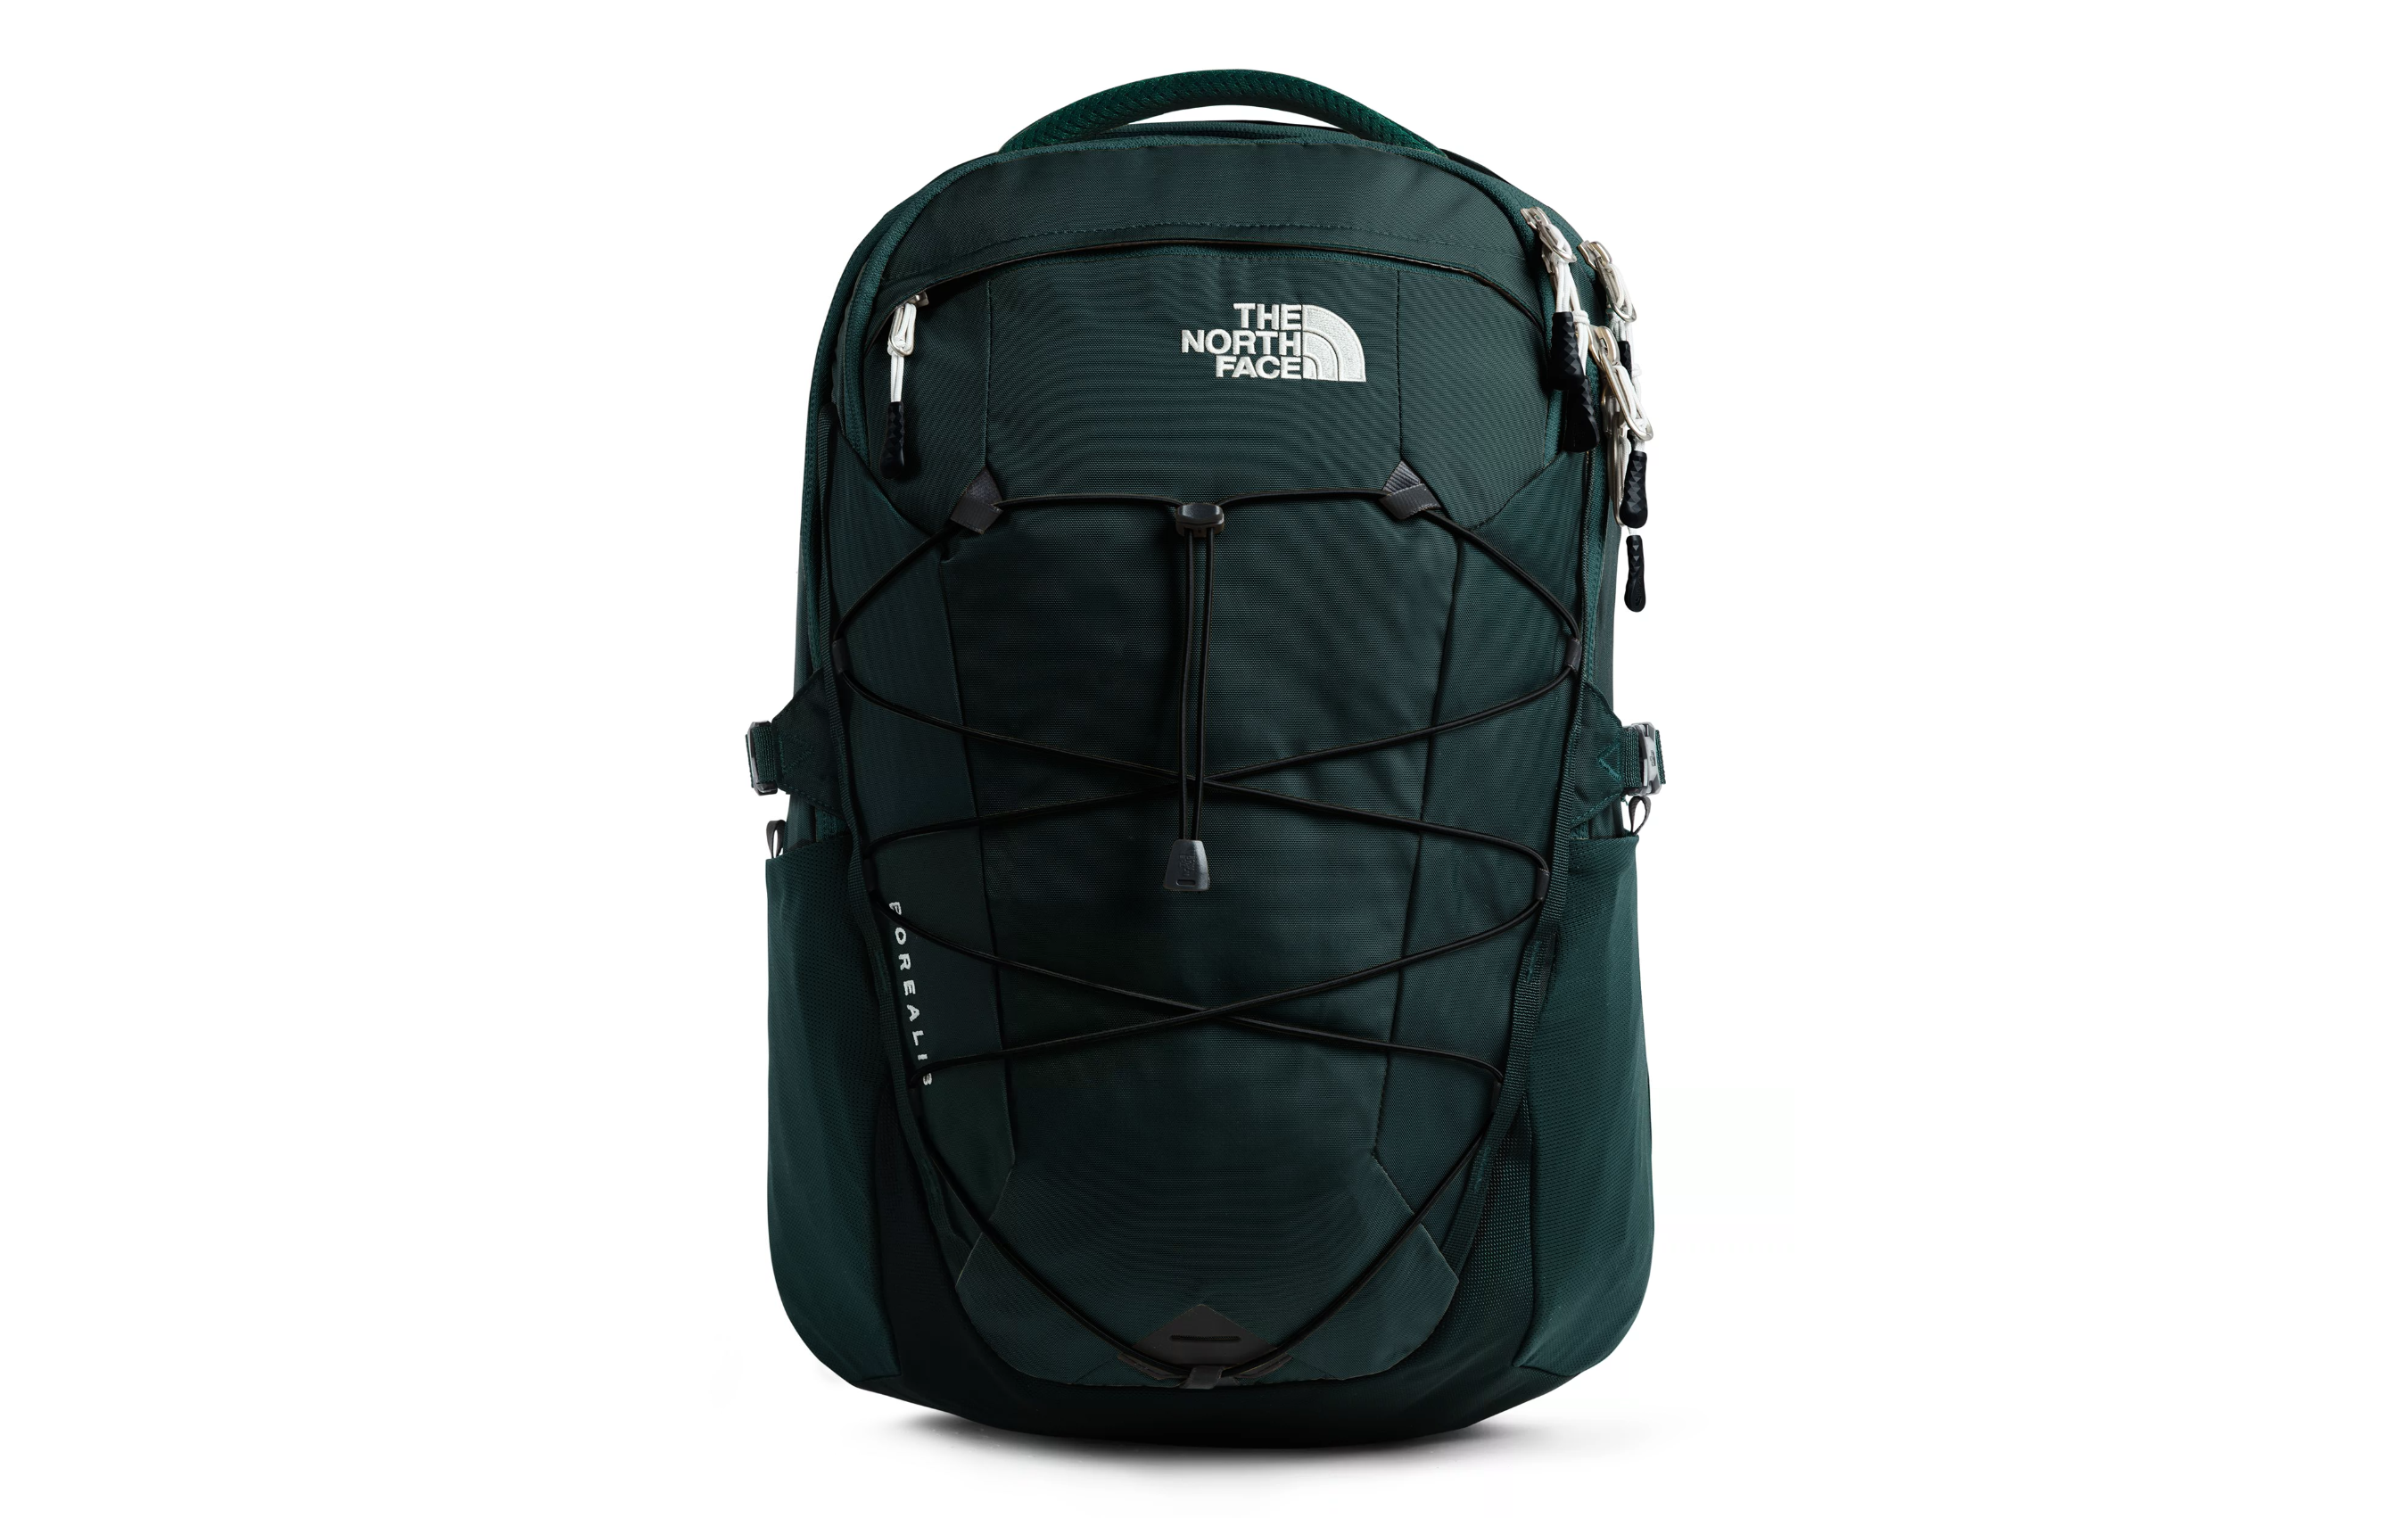 The North Face Borealis Backpack